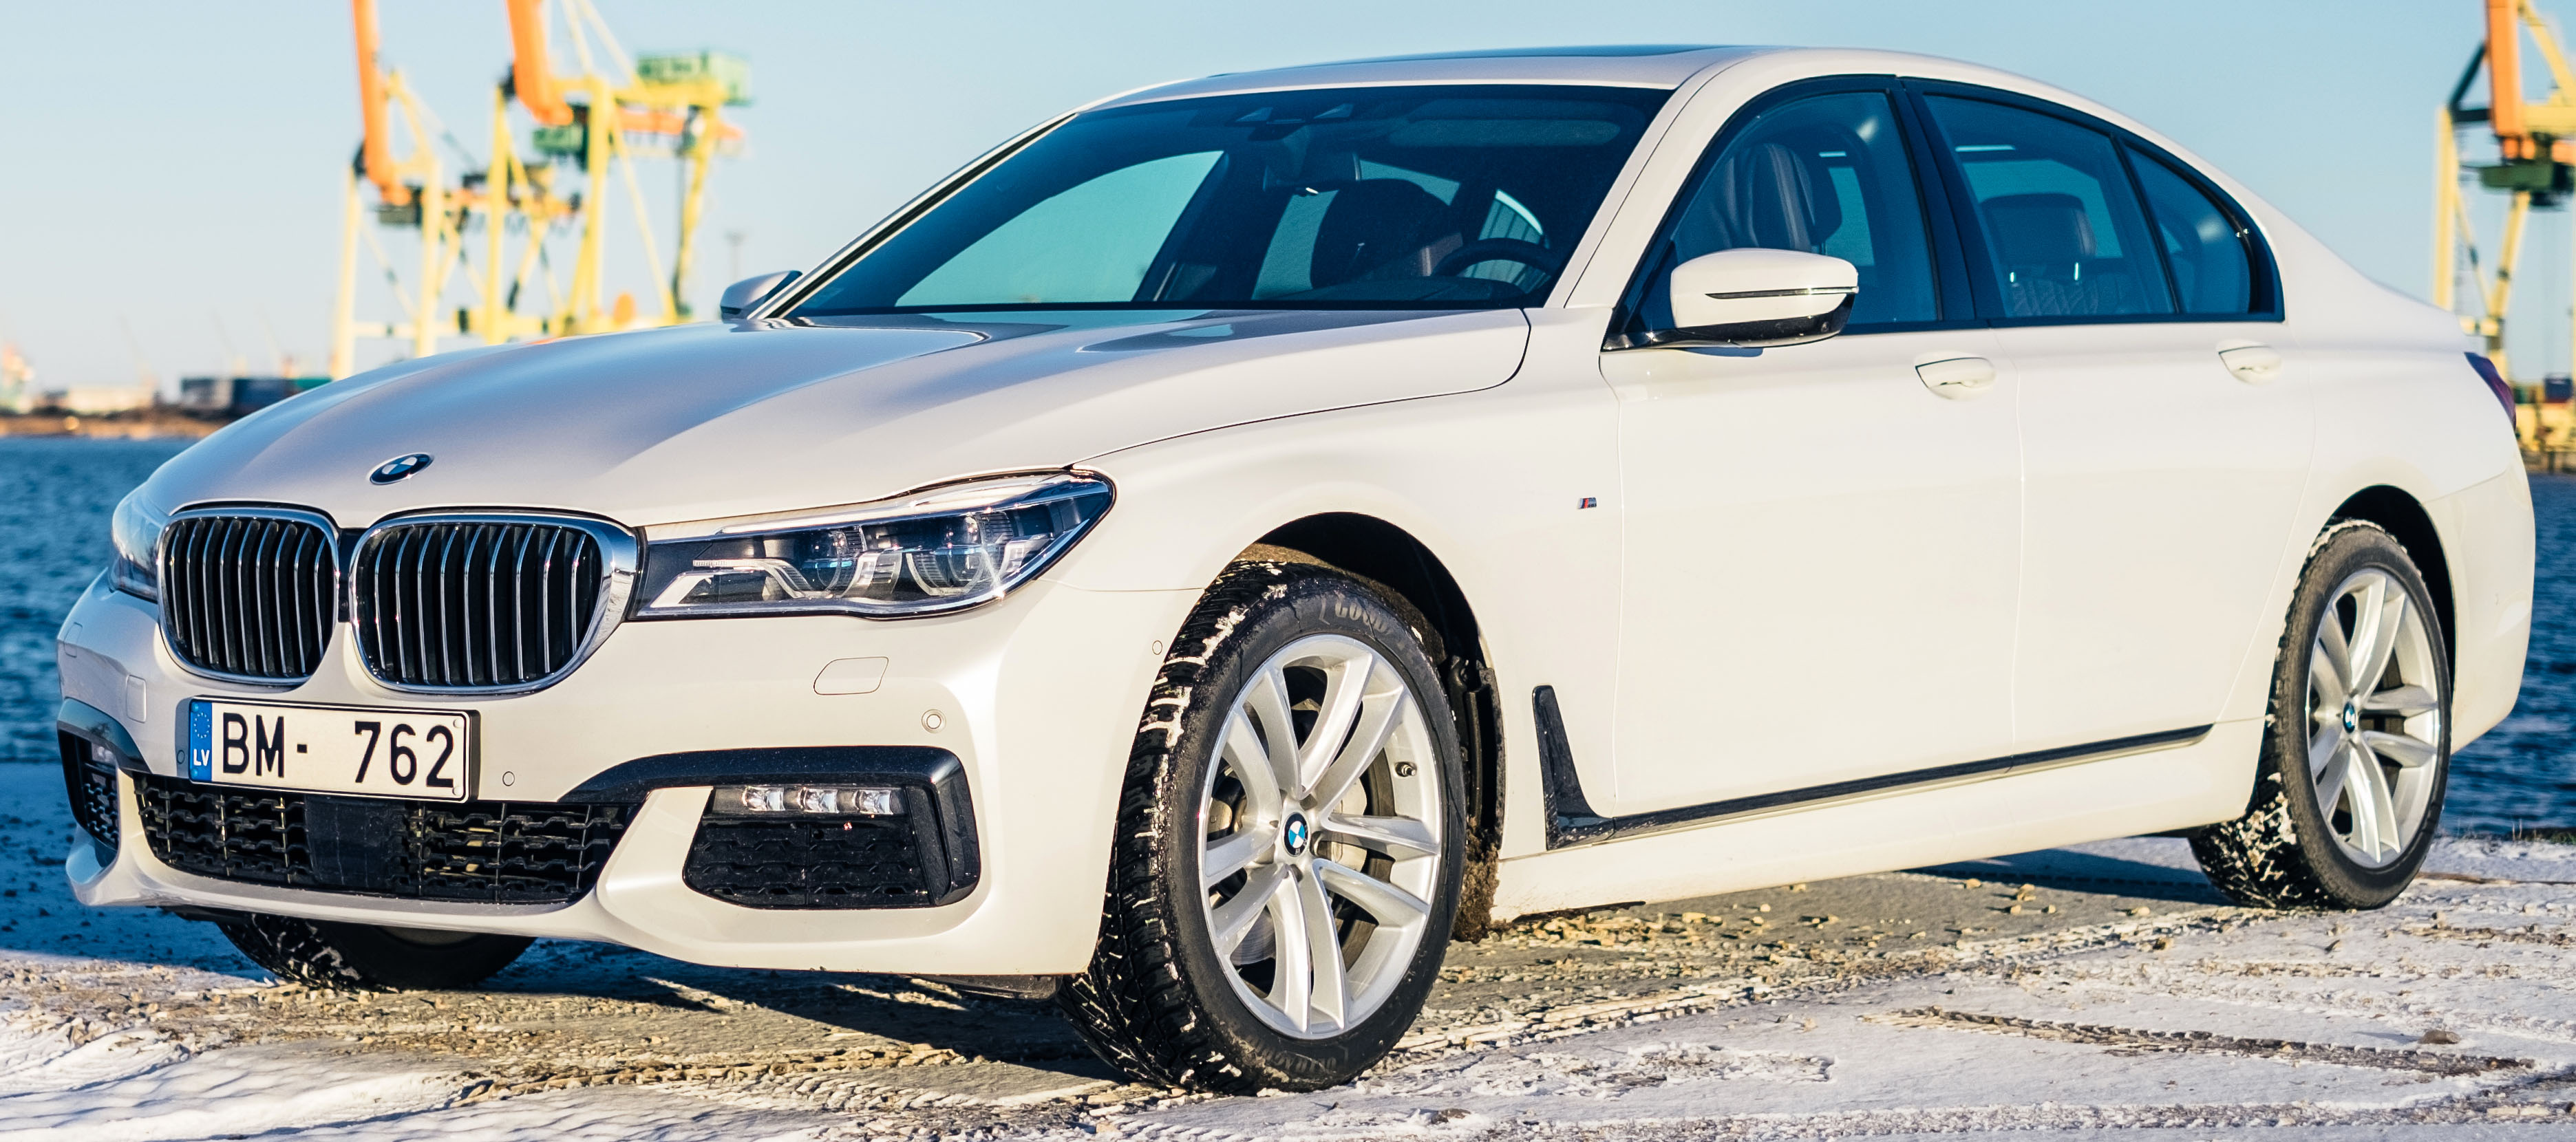 7 Serie File 2016 Bmw 7 Series G11 Sedan Front View Jpg Wikimedia Commons